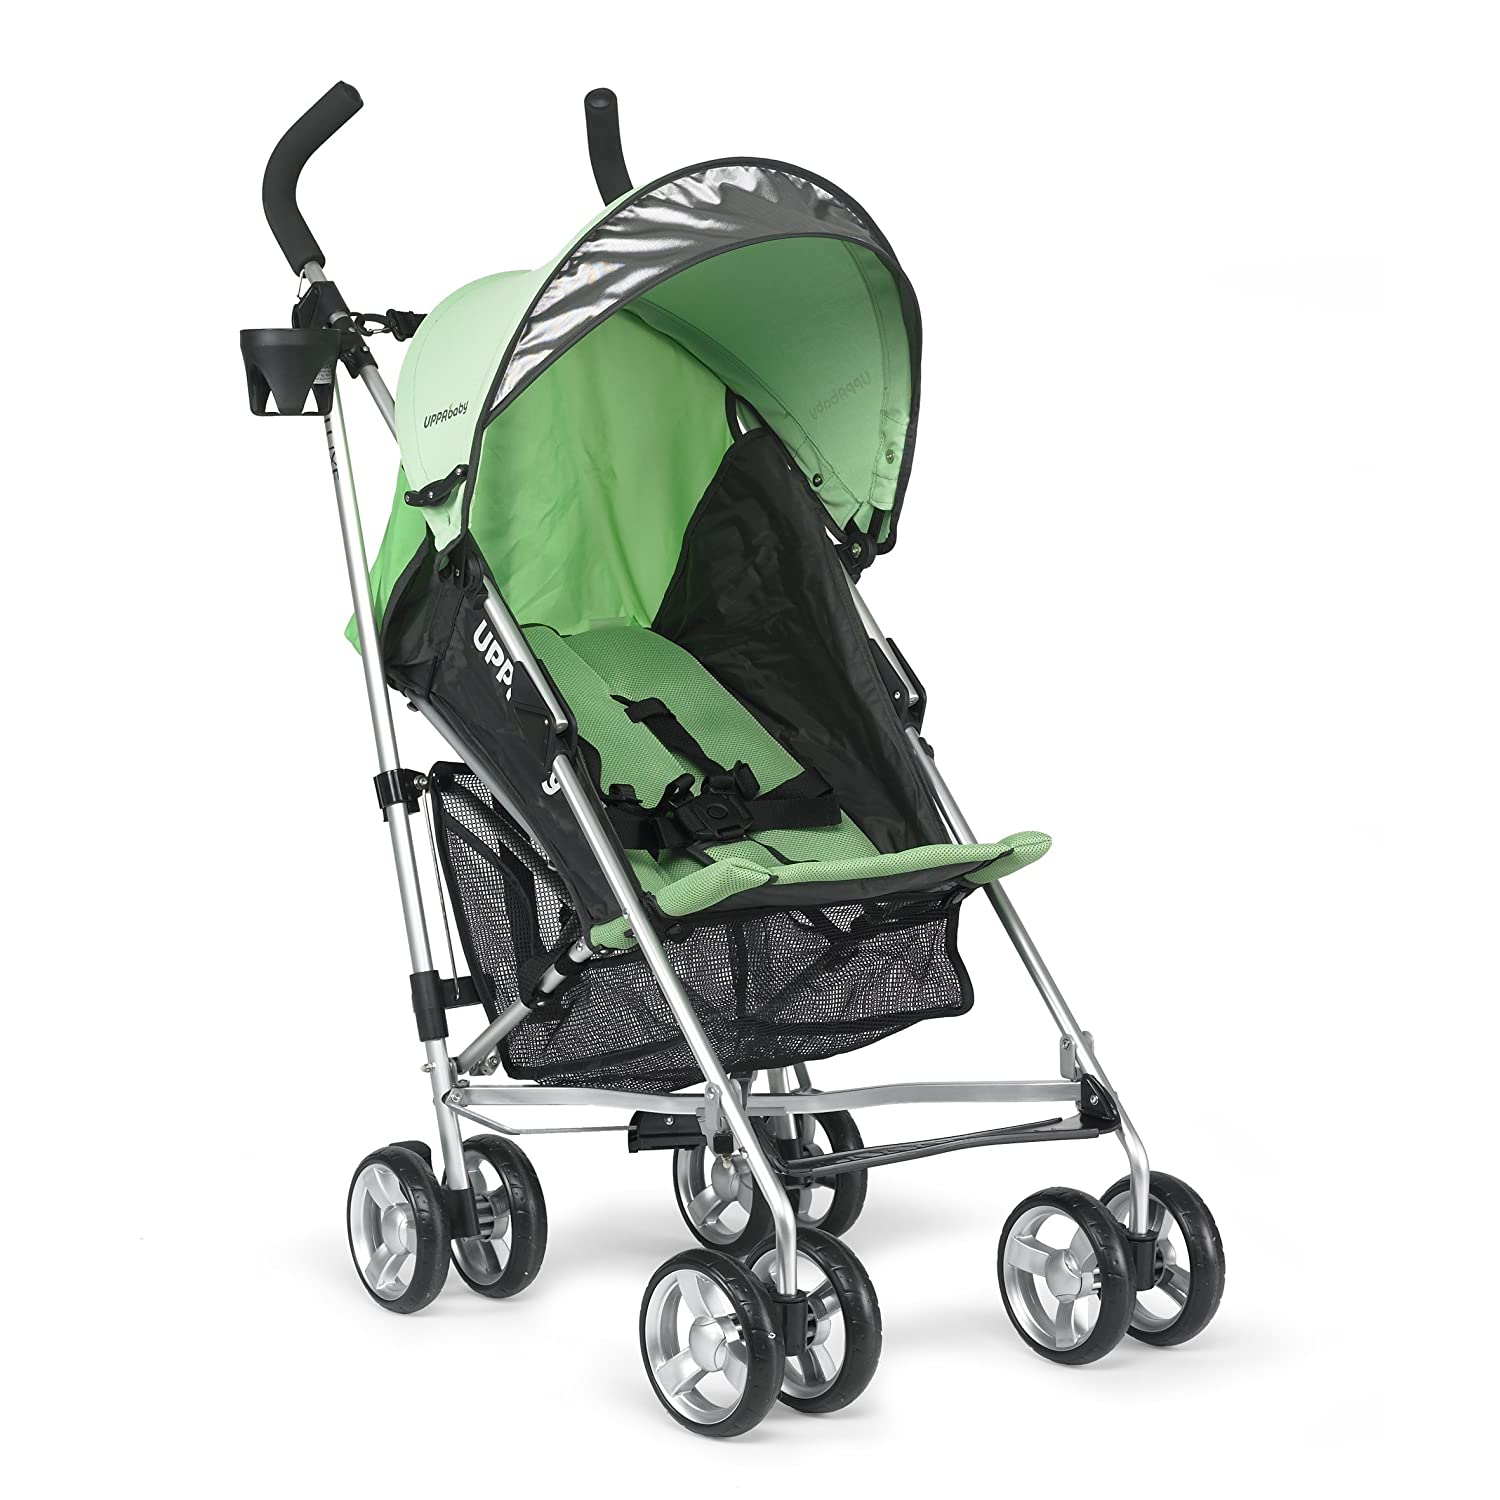 Amazon UPPAbaby G Luxe Stroller Green Maddy Discontinued by Manufacturer Lightweight Strollers Baby